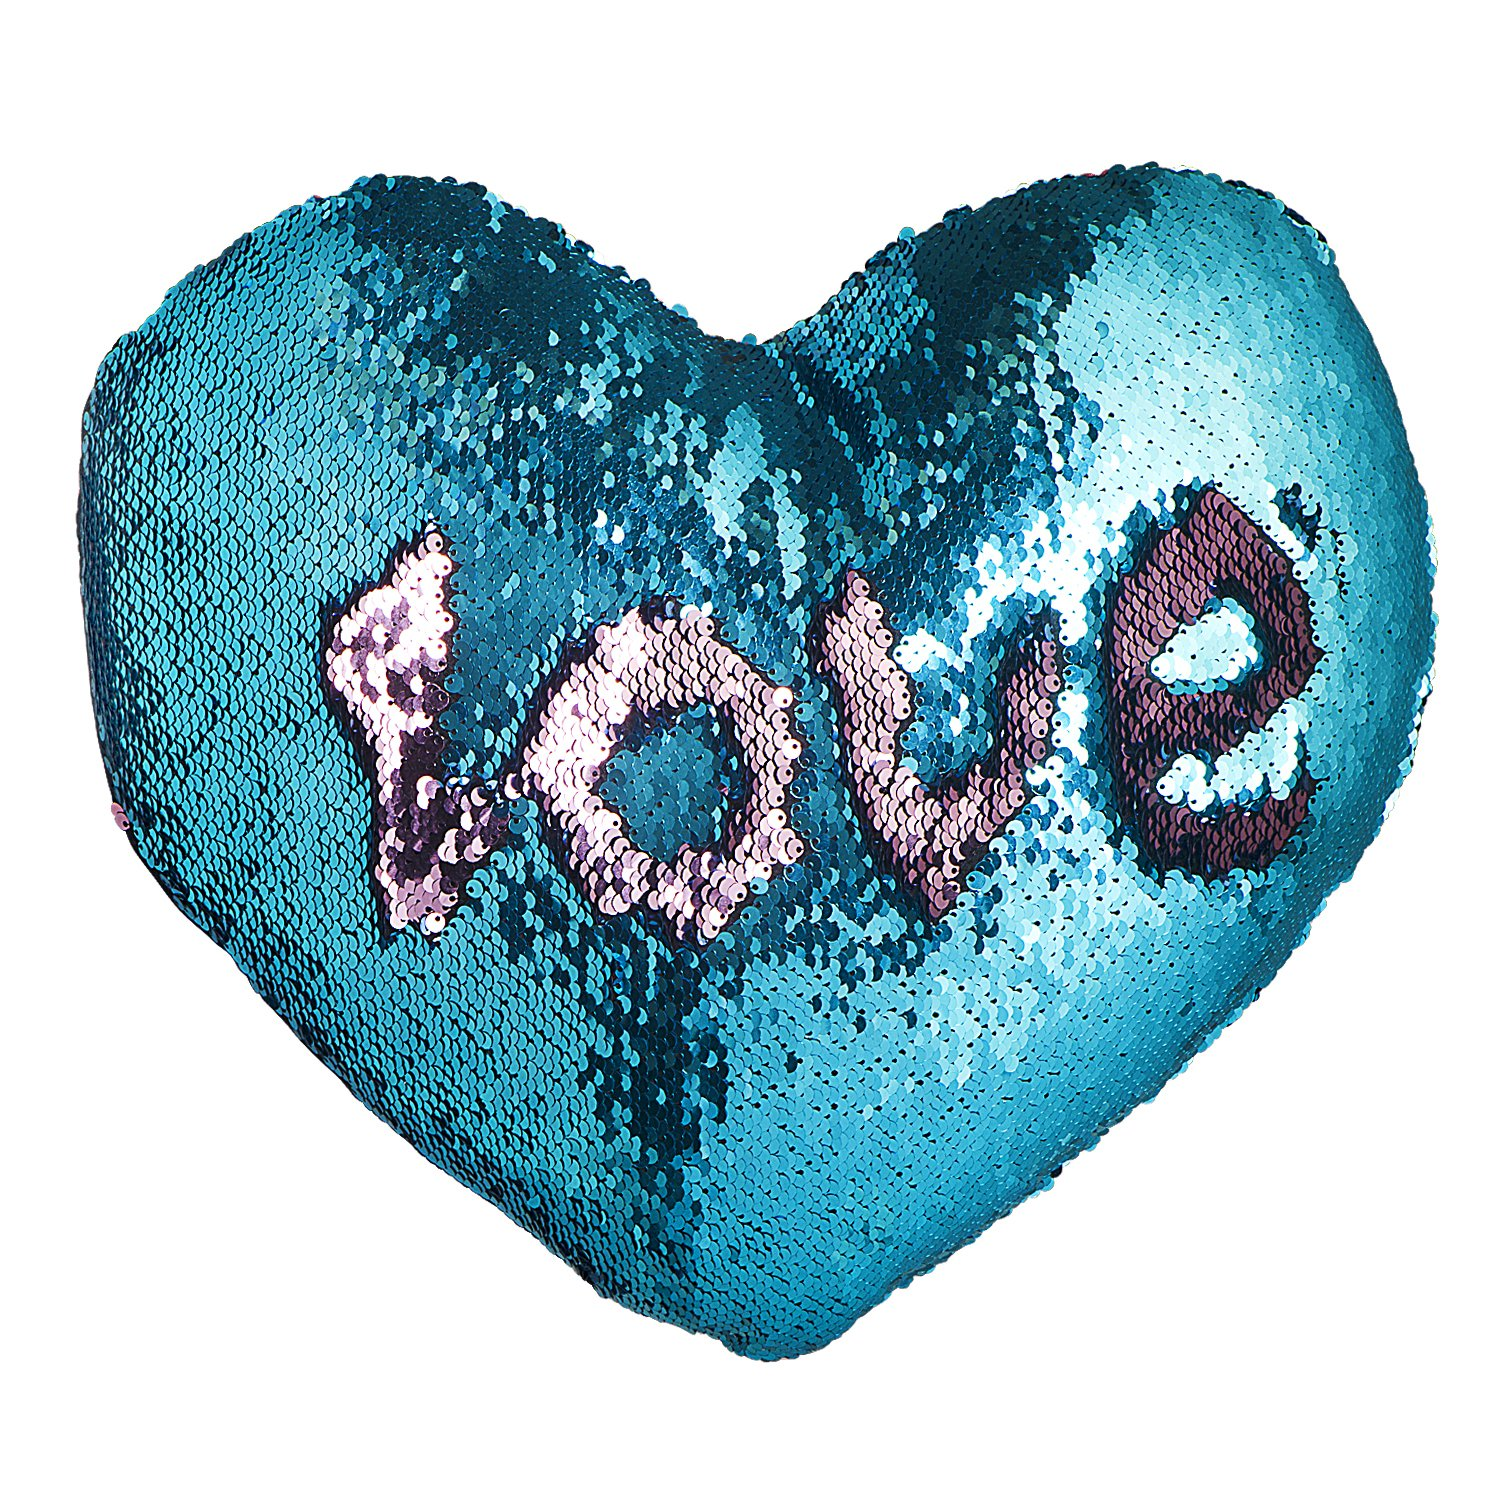 U-miss Mermaid Pillow with Pillow Insert By, Two-color Decorative Heart Shape Reversible Sequin Pillow 13''×15'' (Heart-Shaped, Pink-Blue)